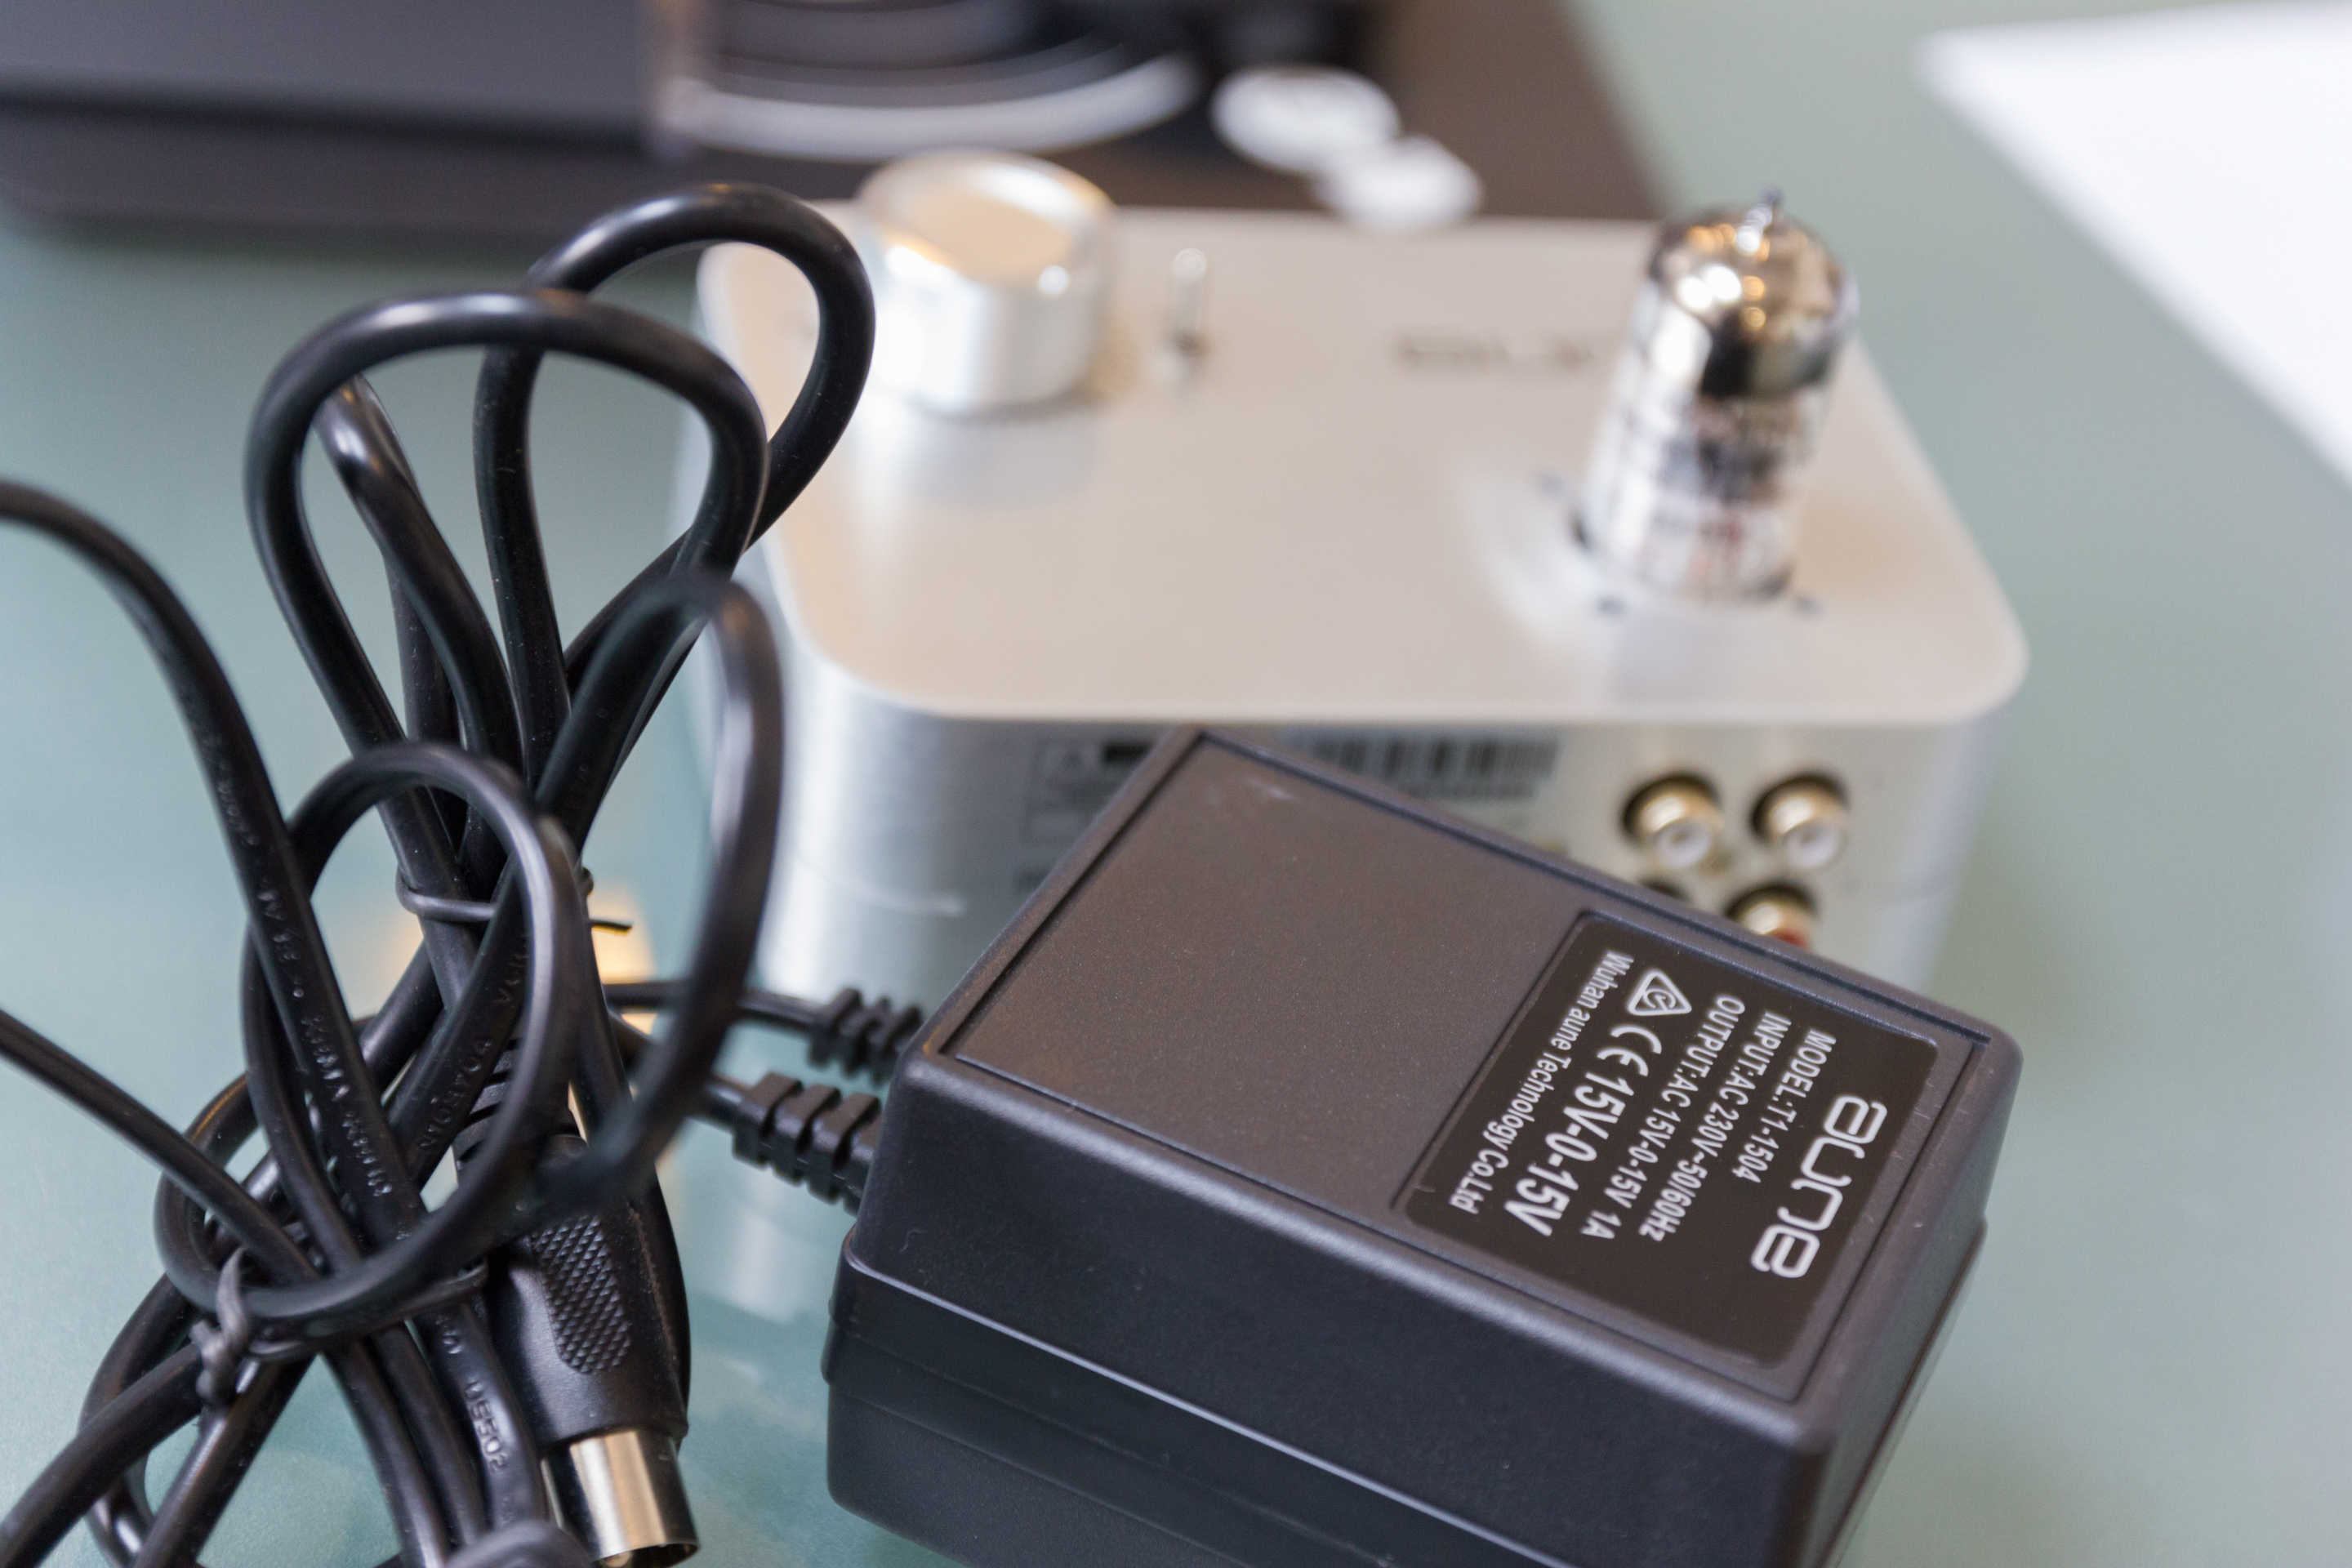 Review Aune T1 Mk2 B1 X1 Pro Dac And X2 Son Vidocom Power Supply 0 15v 1a The Comes With A Classic Bulky